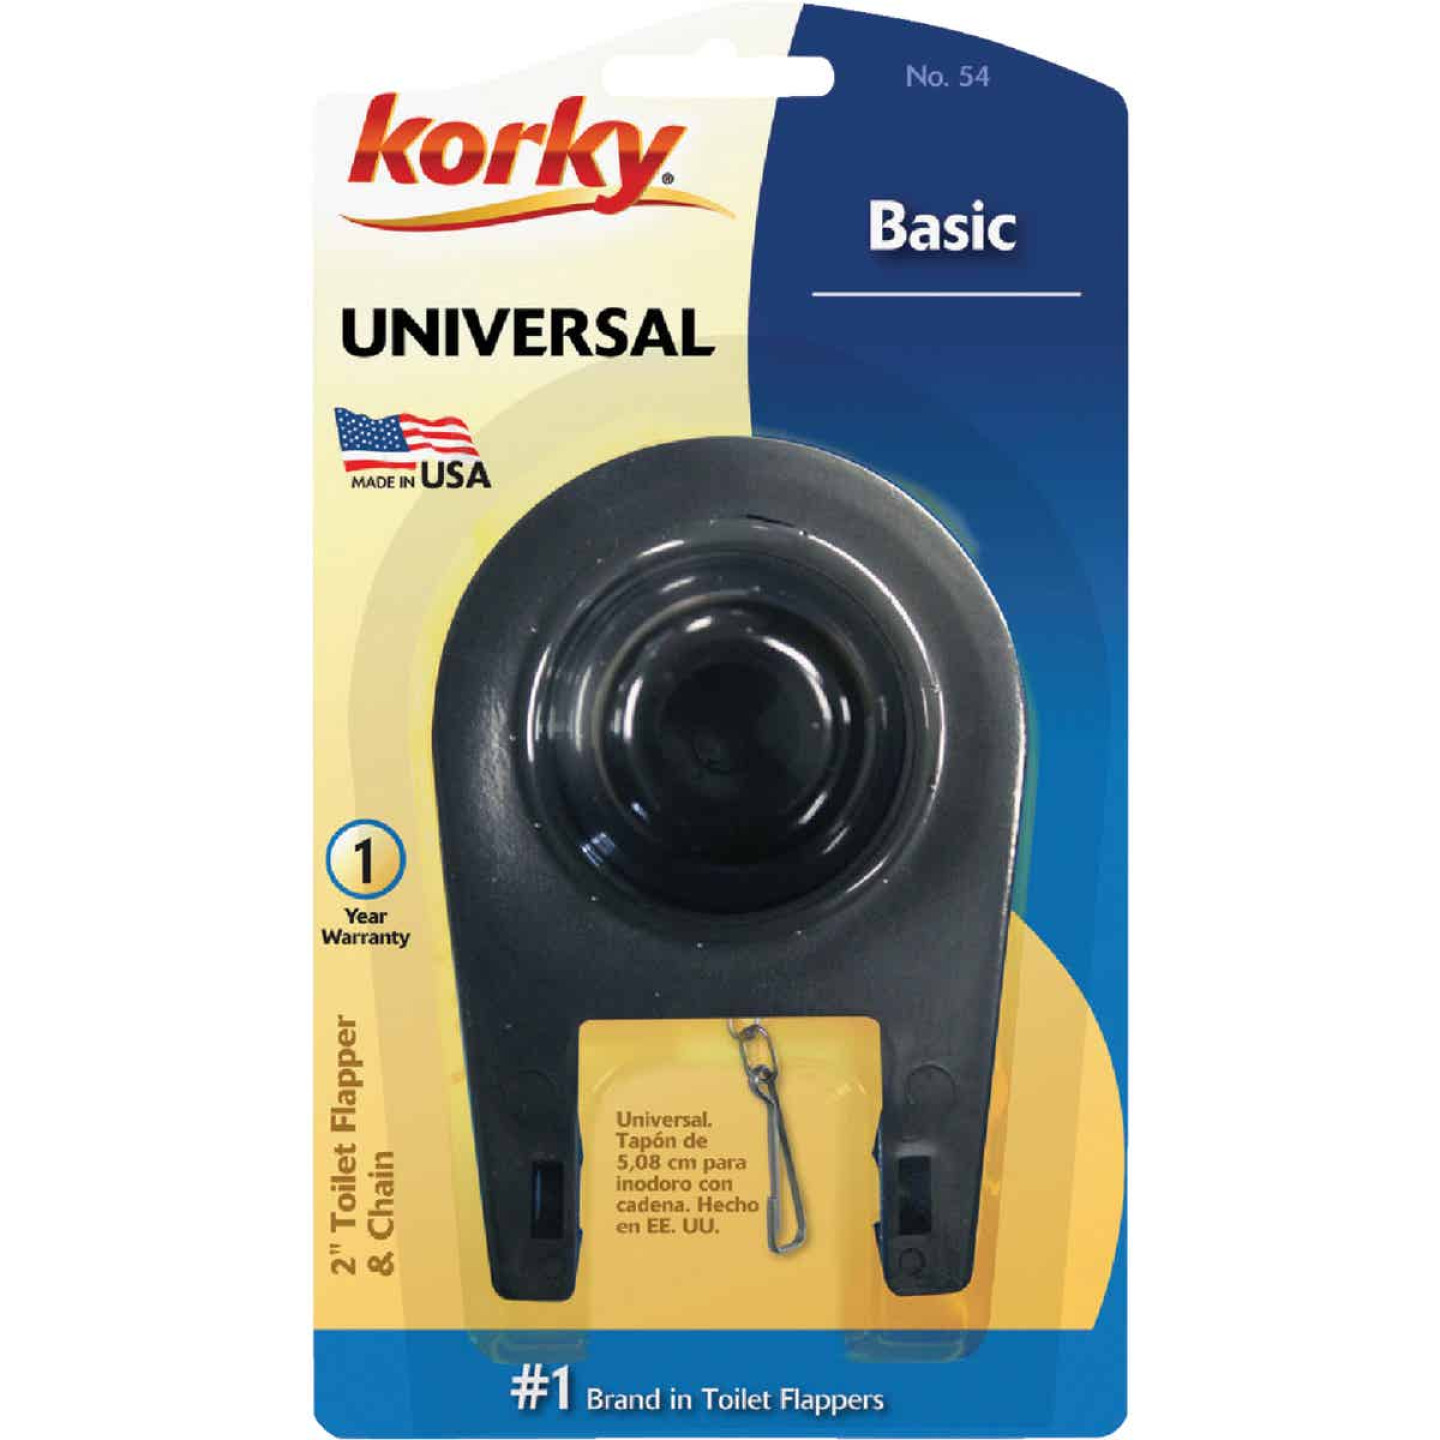 Korky 2 In. Universal Toilet Flapper with Chain  Image 2